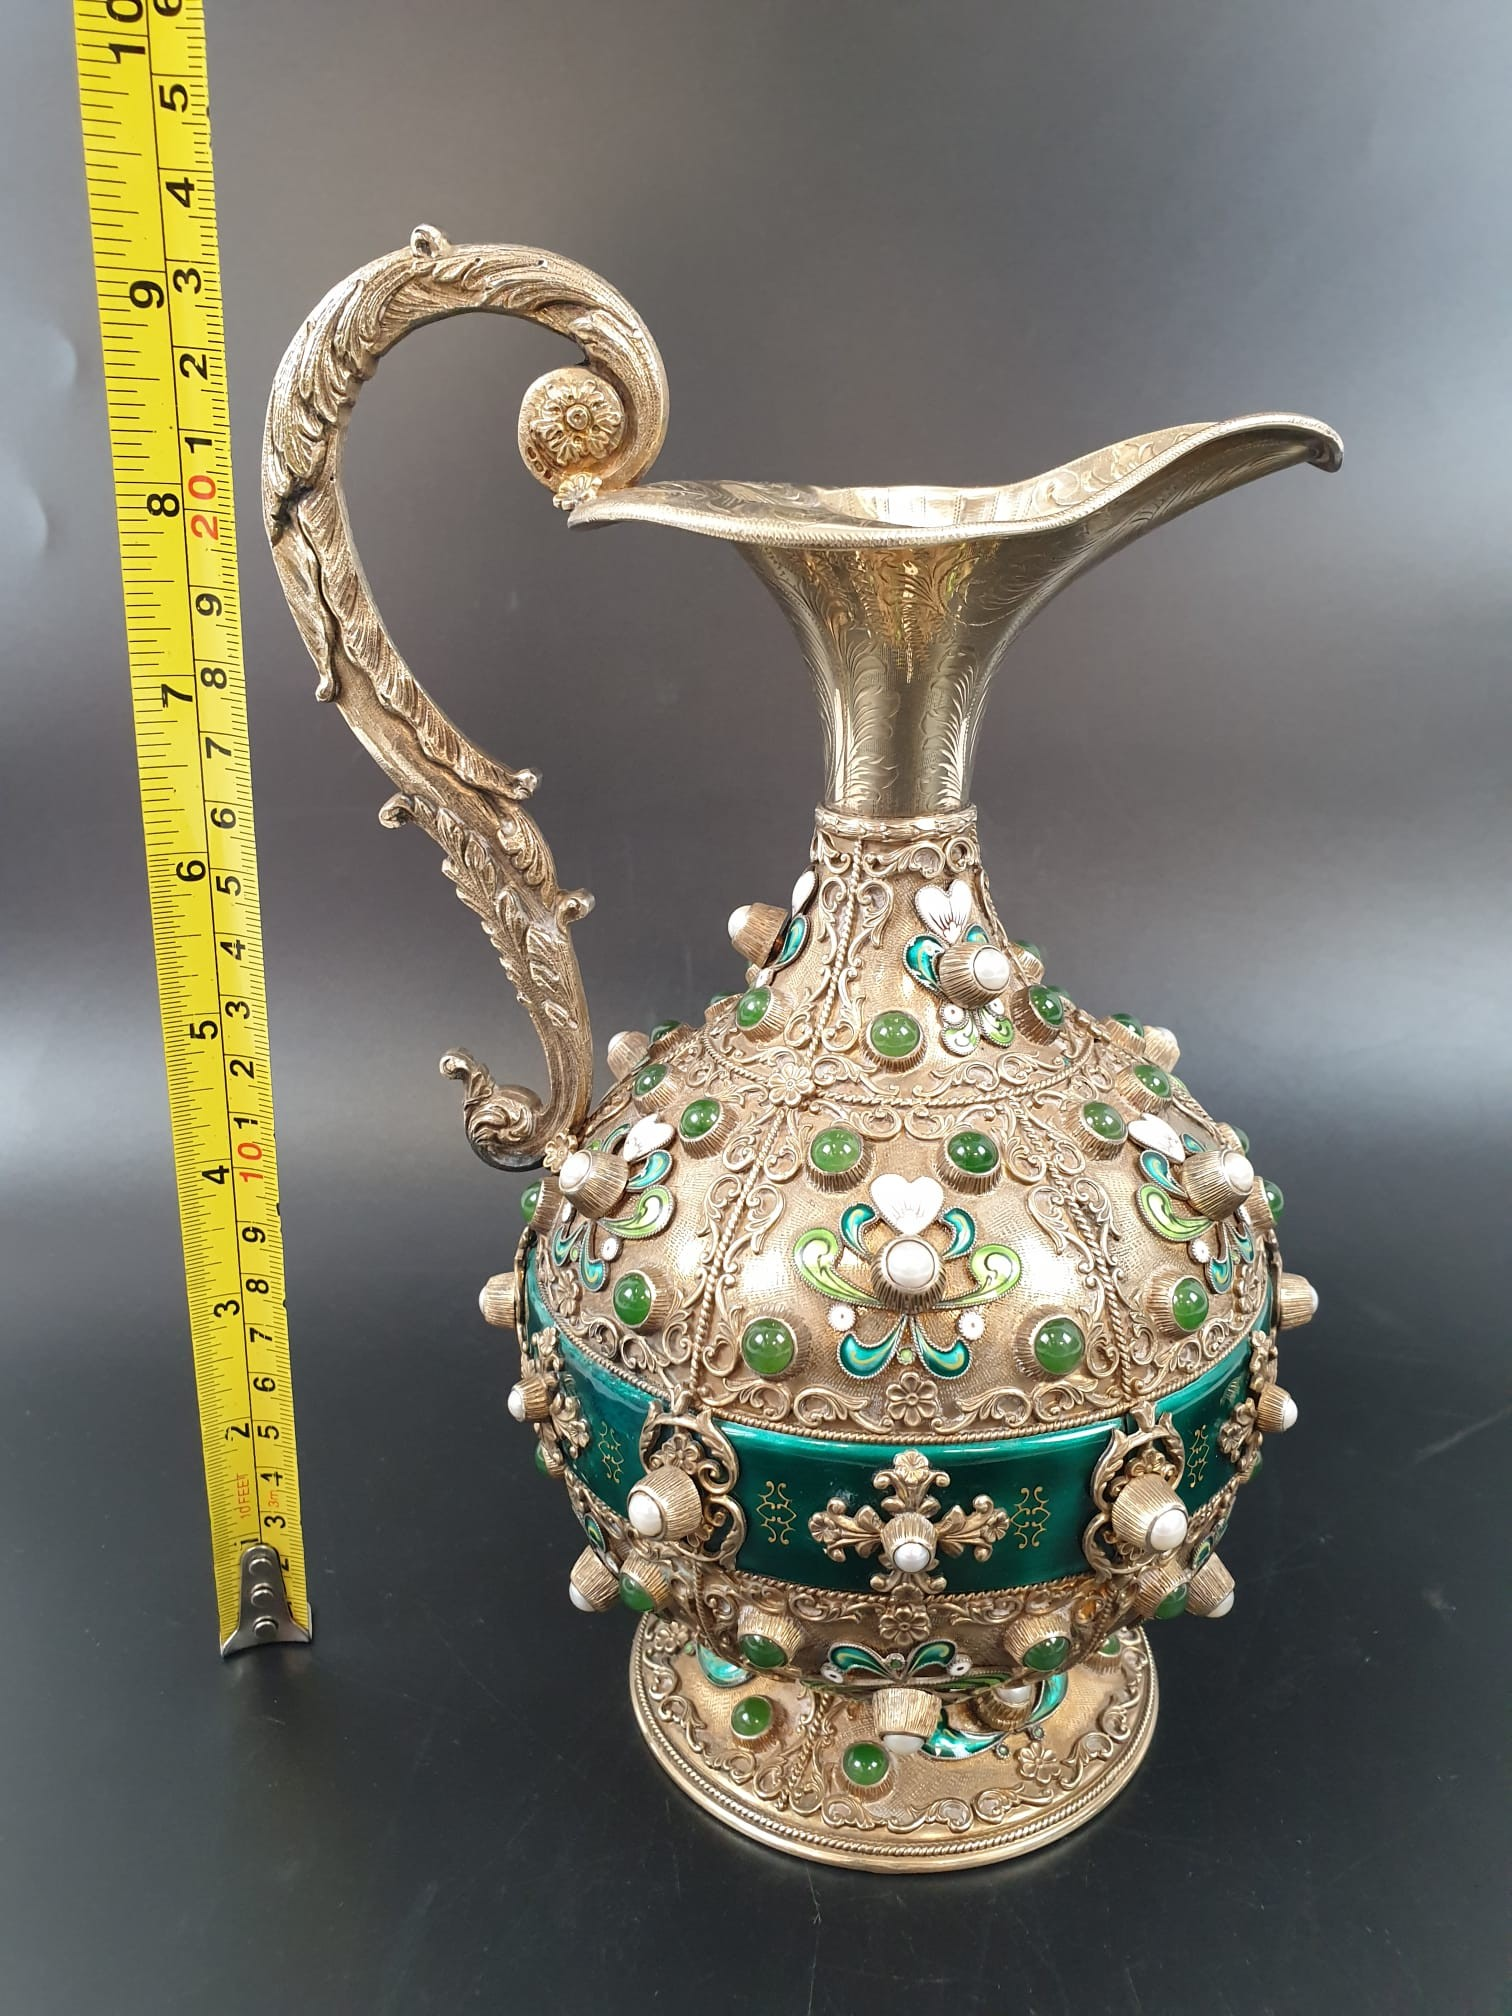 Antique Austrian silver gilt pearl and jade large jug, hand decorated and engraved . 857gms 23 cms. - Image 4 of 15